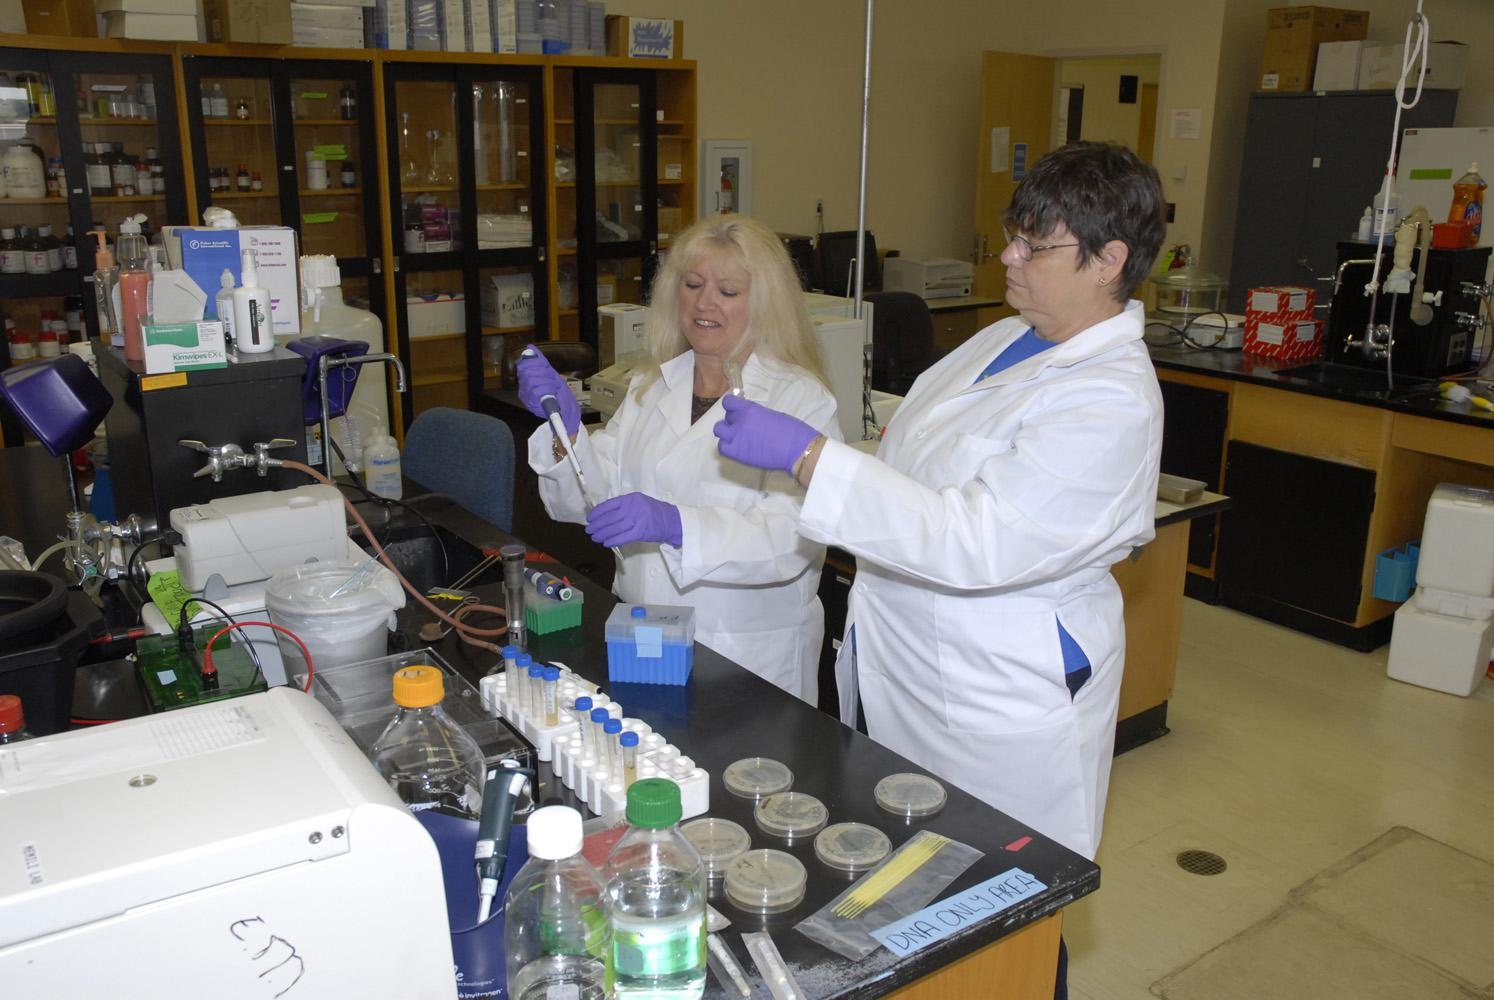 Eighth-grade science teachers Judy Harden of Saltillo (left) and Joan Estapa of Bay Saint Louis conduct experiments during an intense two-week course in functional genomics and biology at Mississippi State University. The teachers were taking part in a Research Experience for Teachers grant under the supervision of an associate professor in MSU's Department of Animal and Dairy Science. (Photo by MSU Ag Communications/Linda Breazeale)